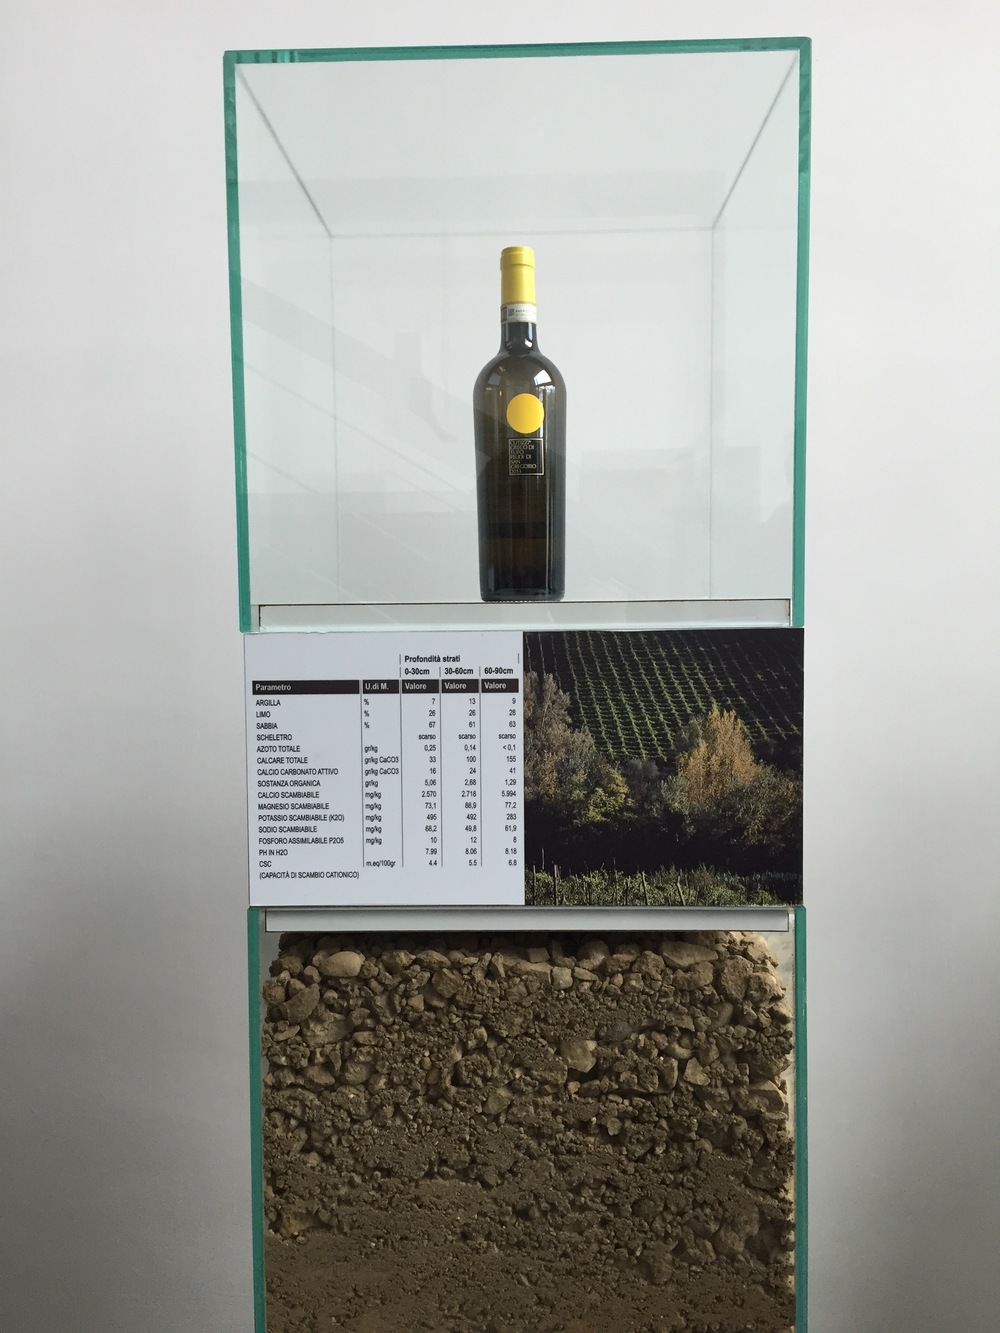 Display cases designed by Vignelli show the soil in which each varietal is grown.